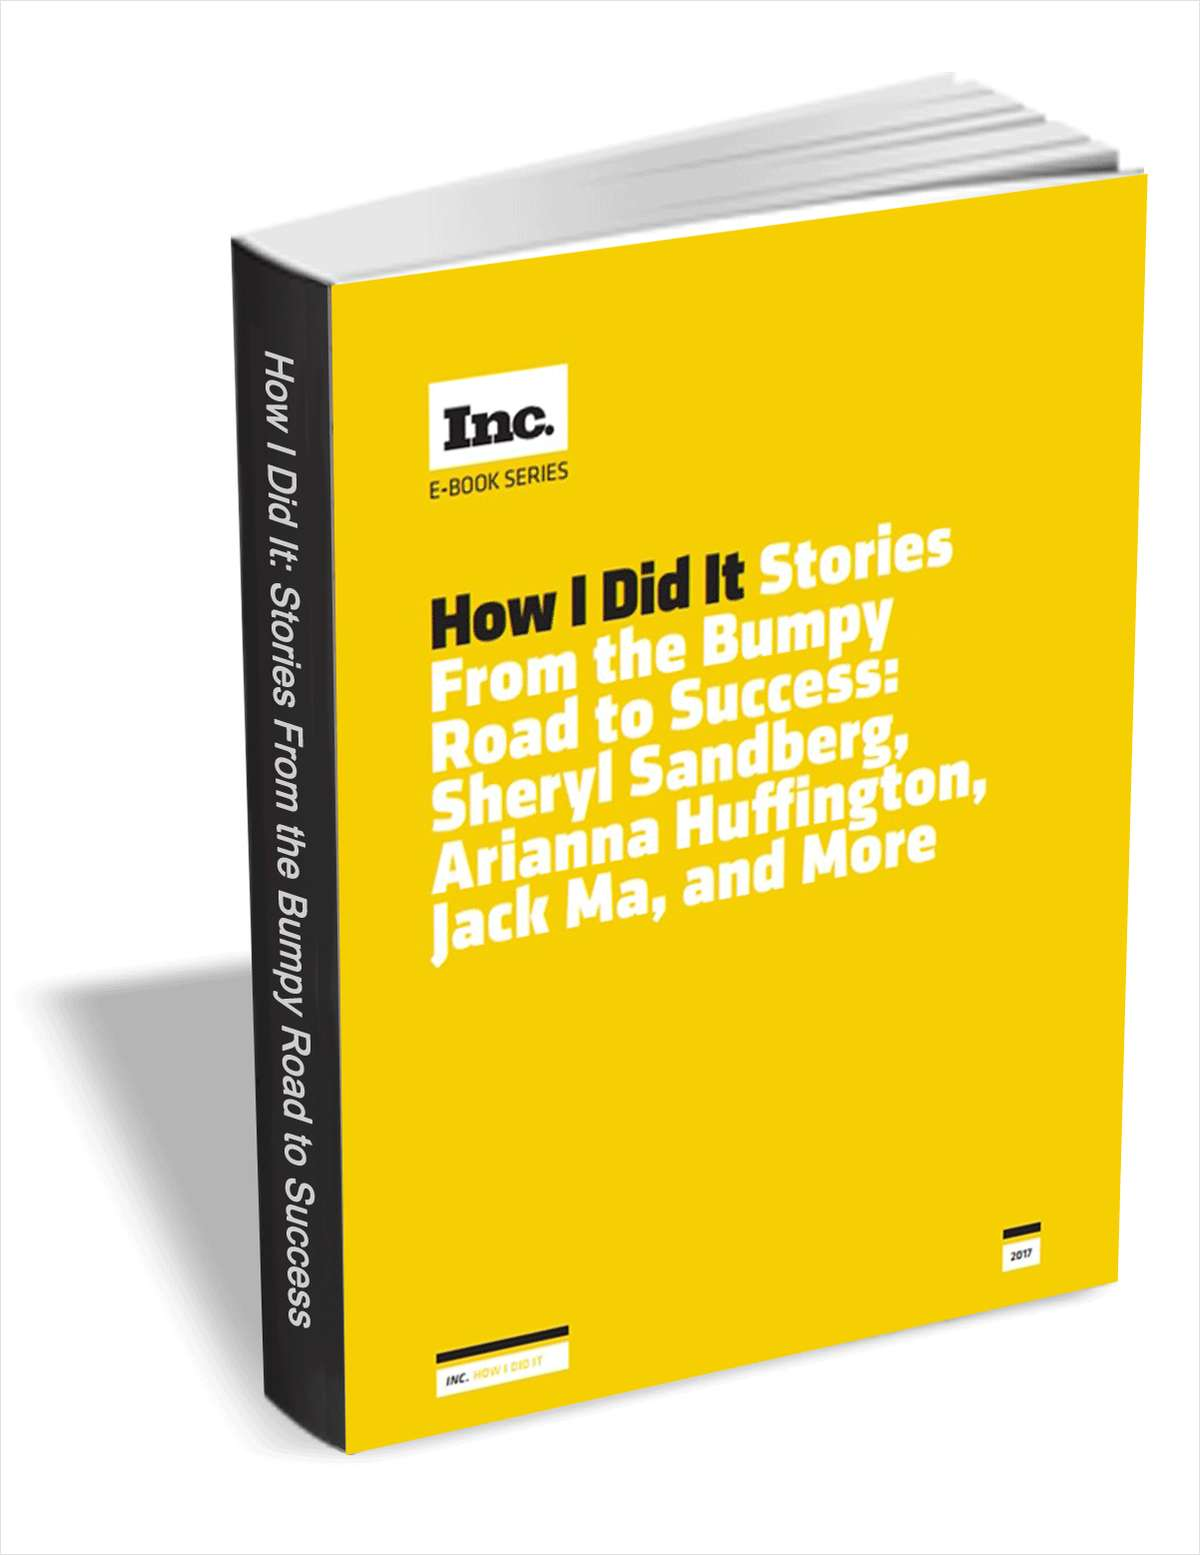 How I Did It - Stories from the Bumpy Road to Success: Sheryl Sandberg, Arianna Huffington, Jack Ma, and More